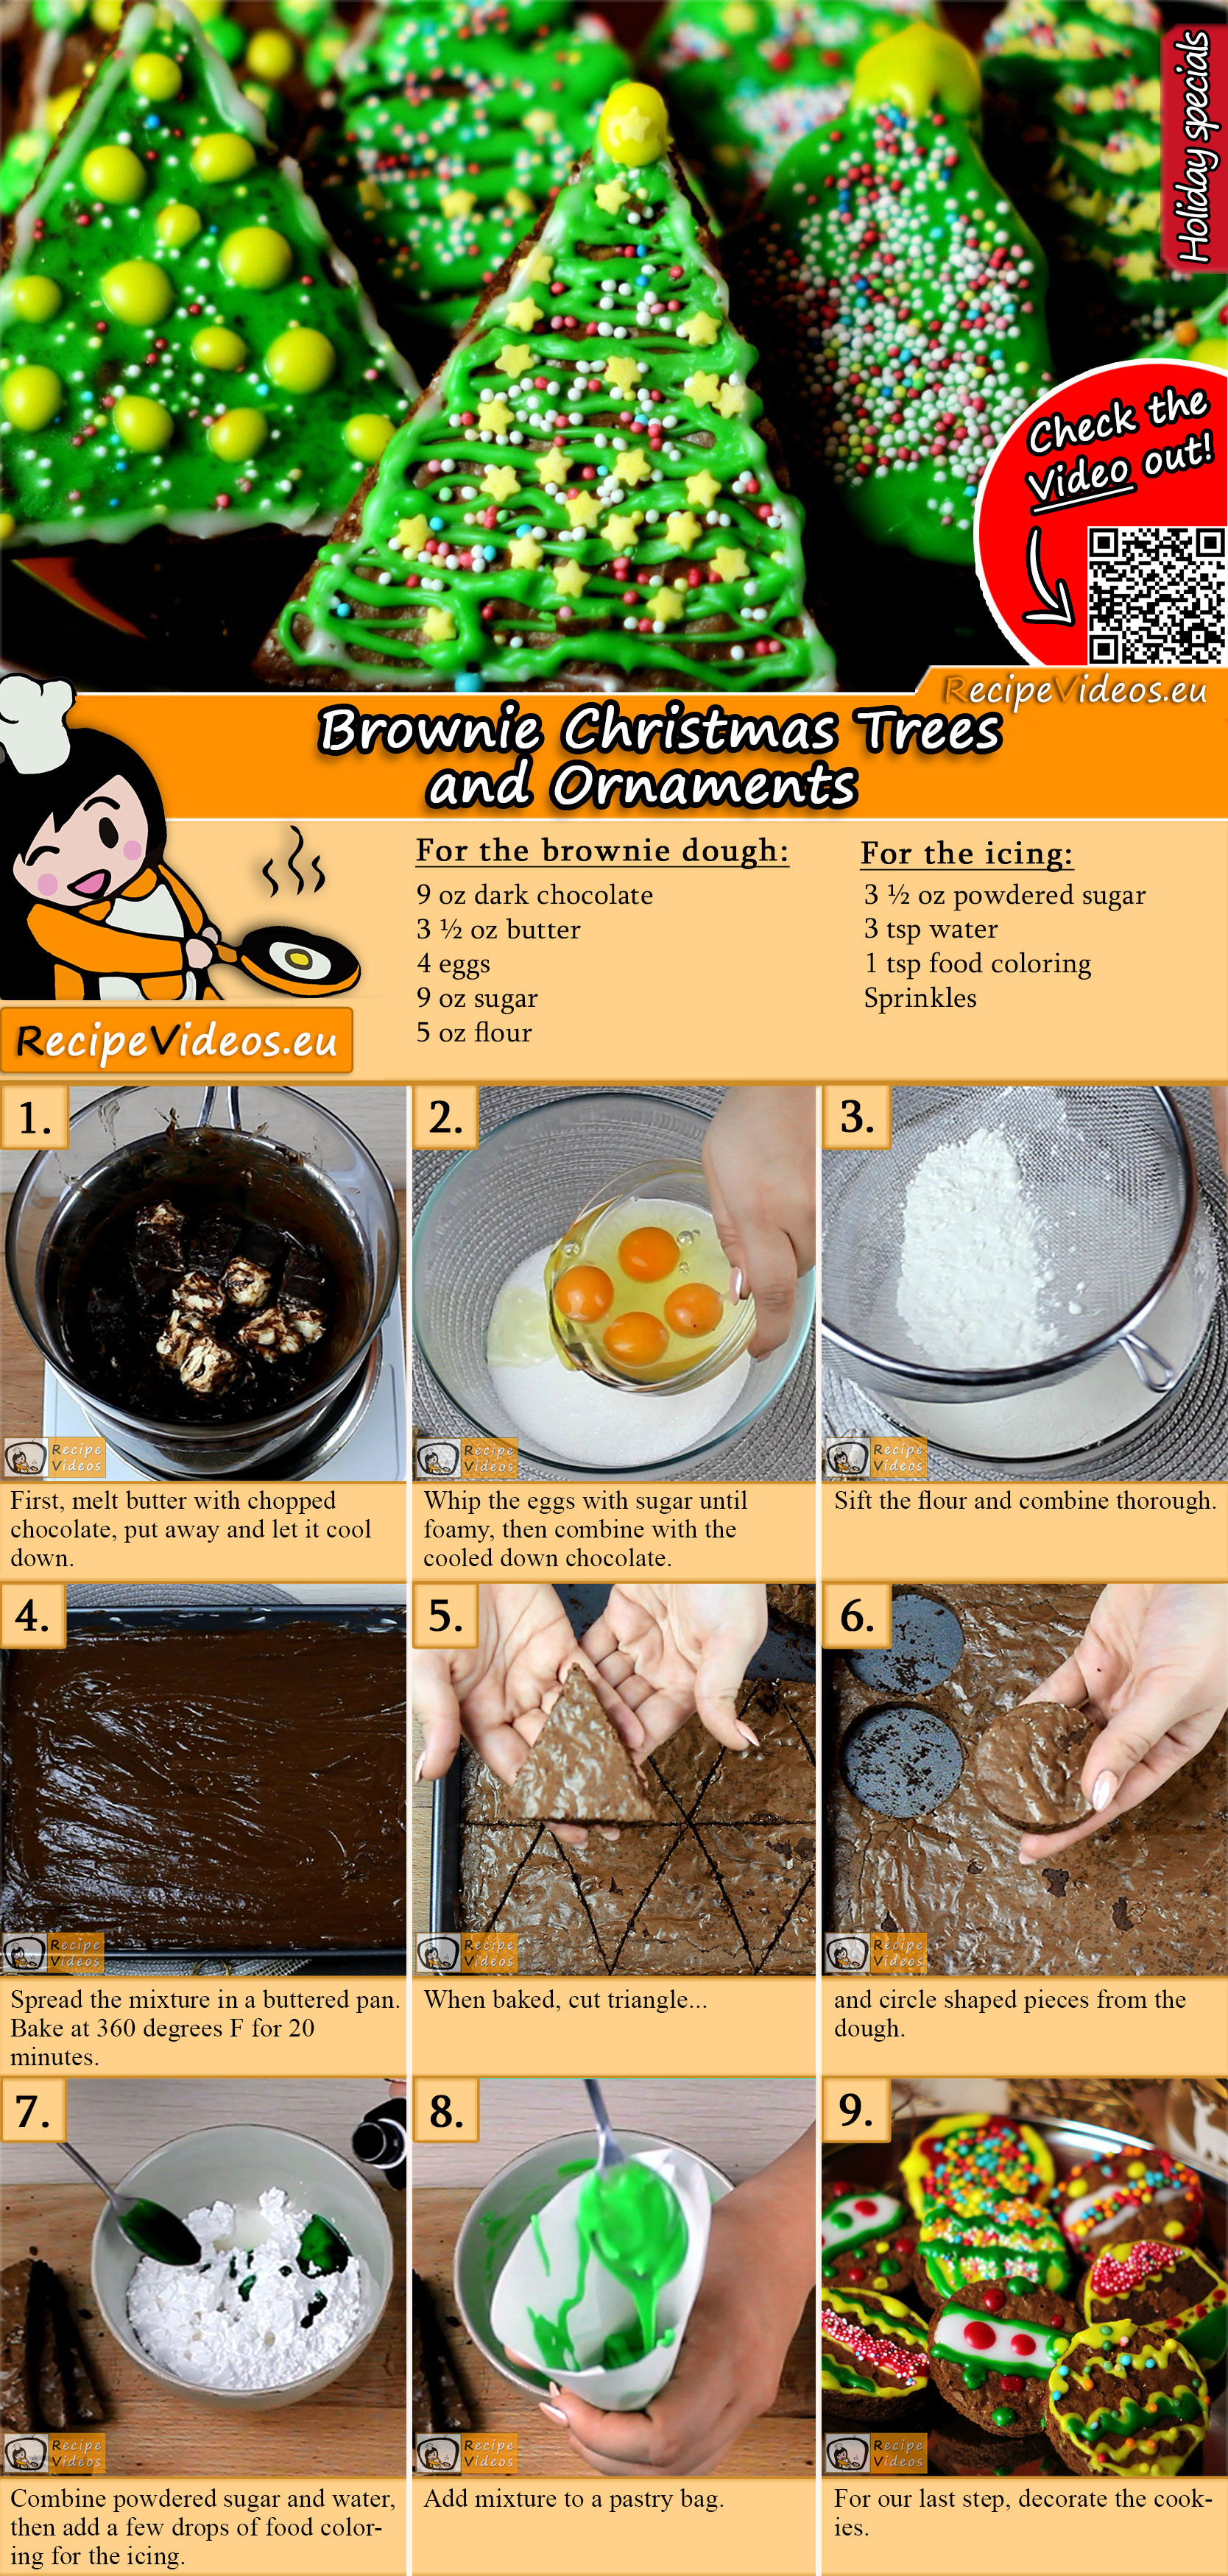 Brownie Christmas Trees and Ornaments recipe with video